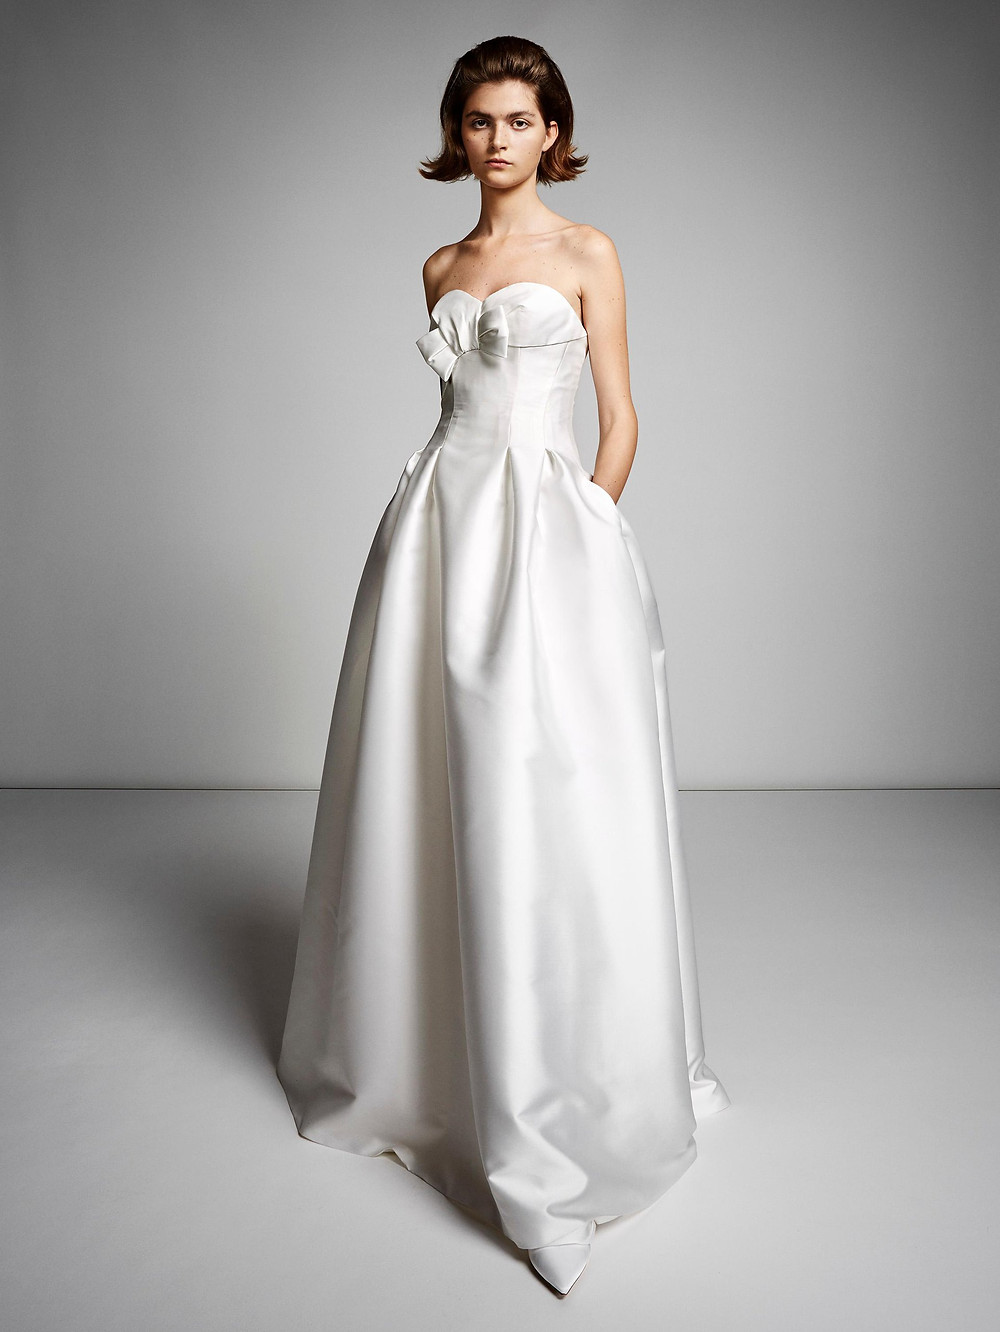 A Viktor & Rolf strapless silk A-line wedding dress with pockets and a bow